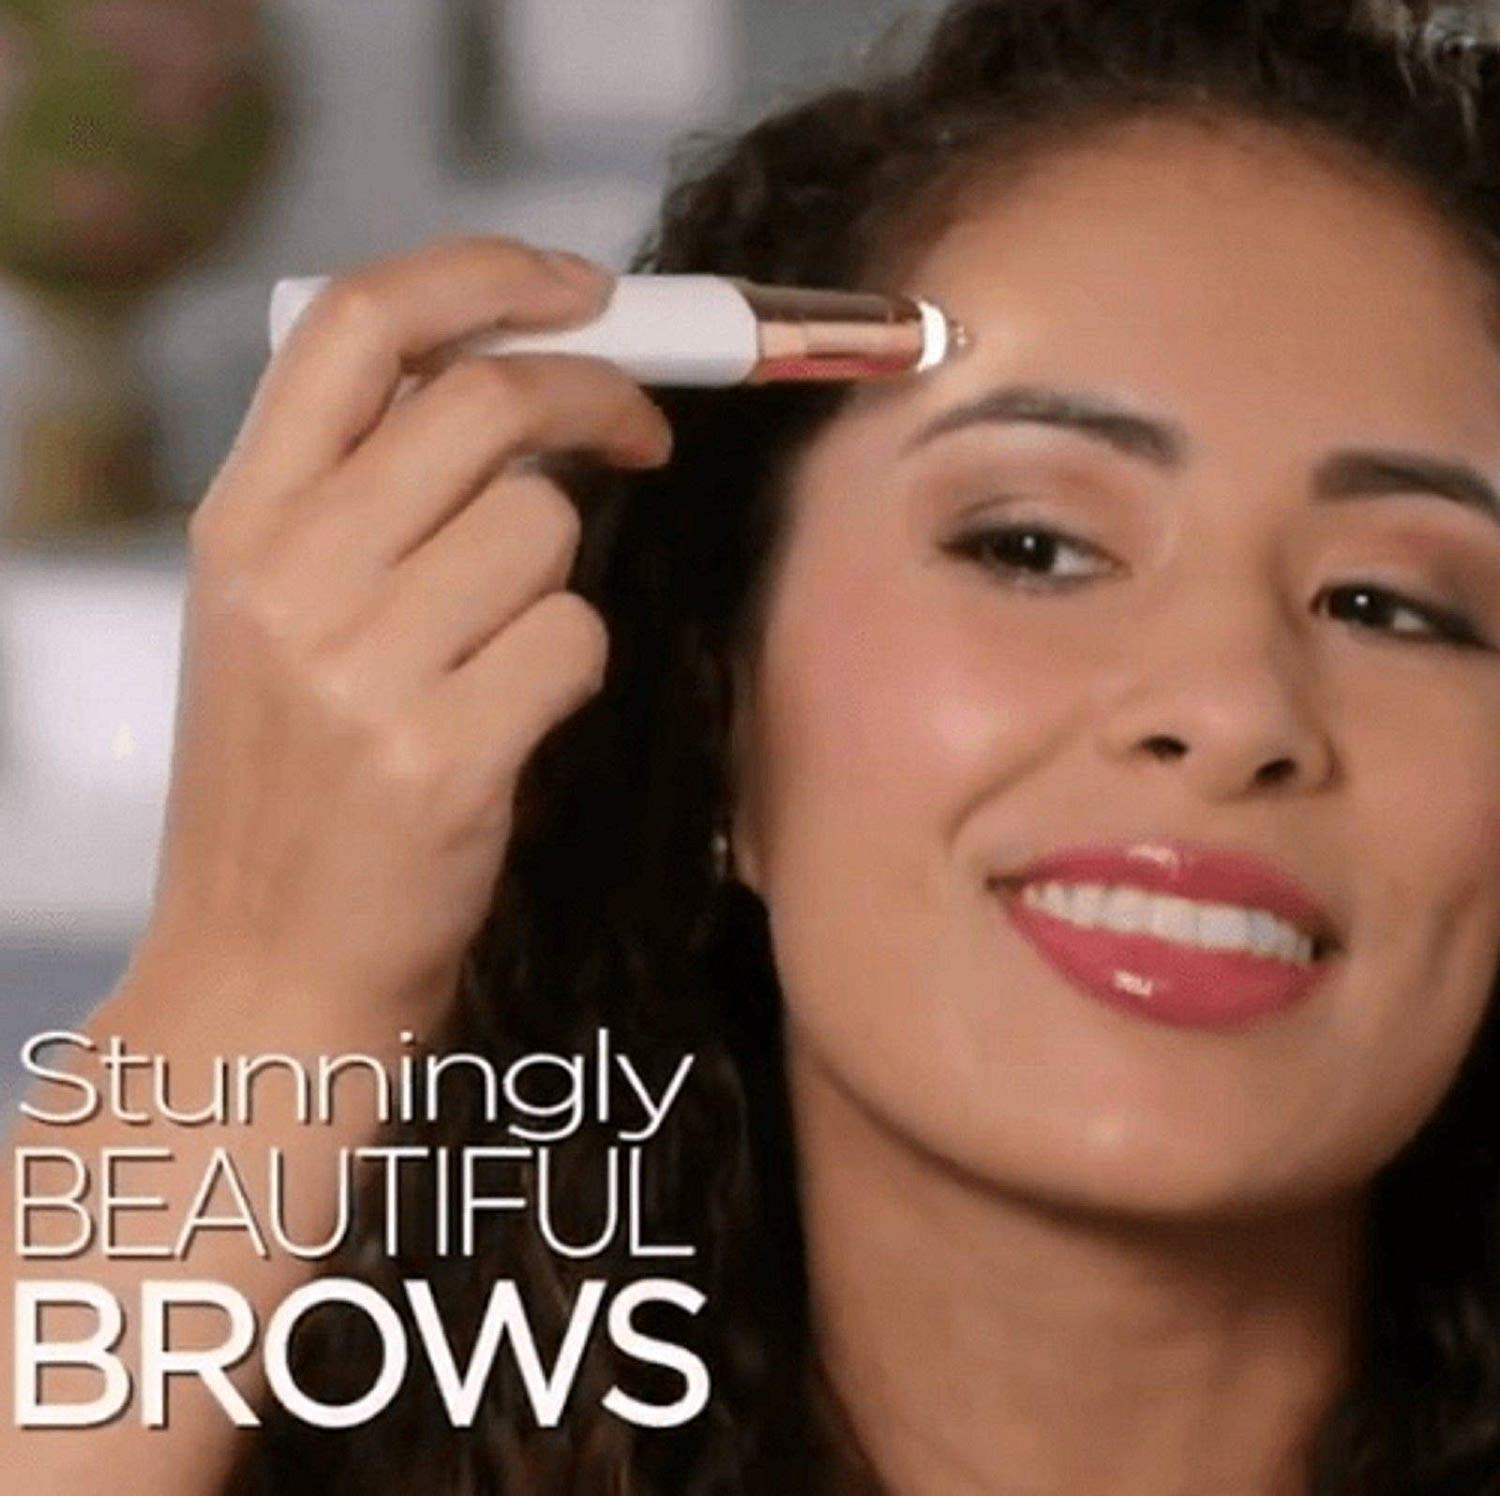 Flawlessly Brow Hair Remover - Brows Best Eyebrow Trimmer Women Painless Hair Remover, Flawlessly Eyebrow Remover As Seen On TV by Life In Color (Image #2)